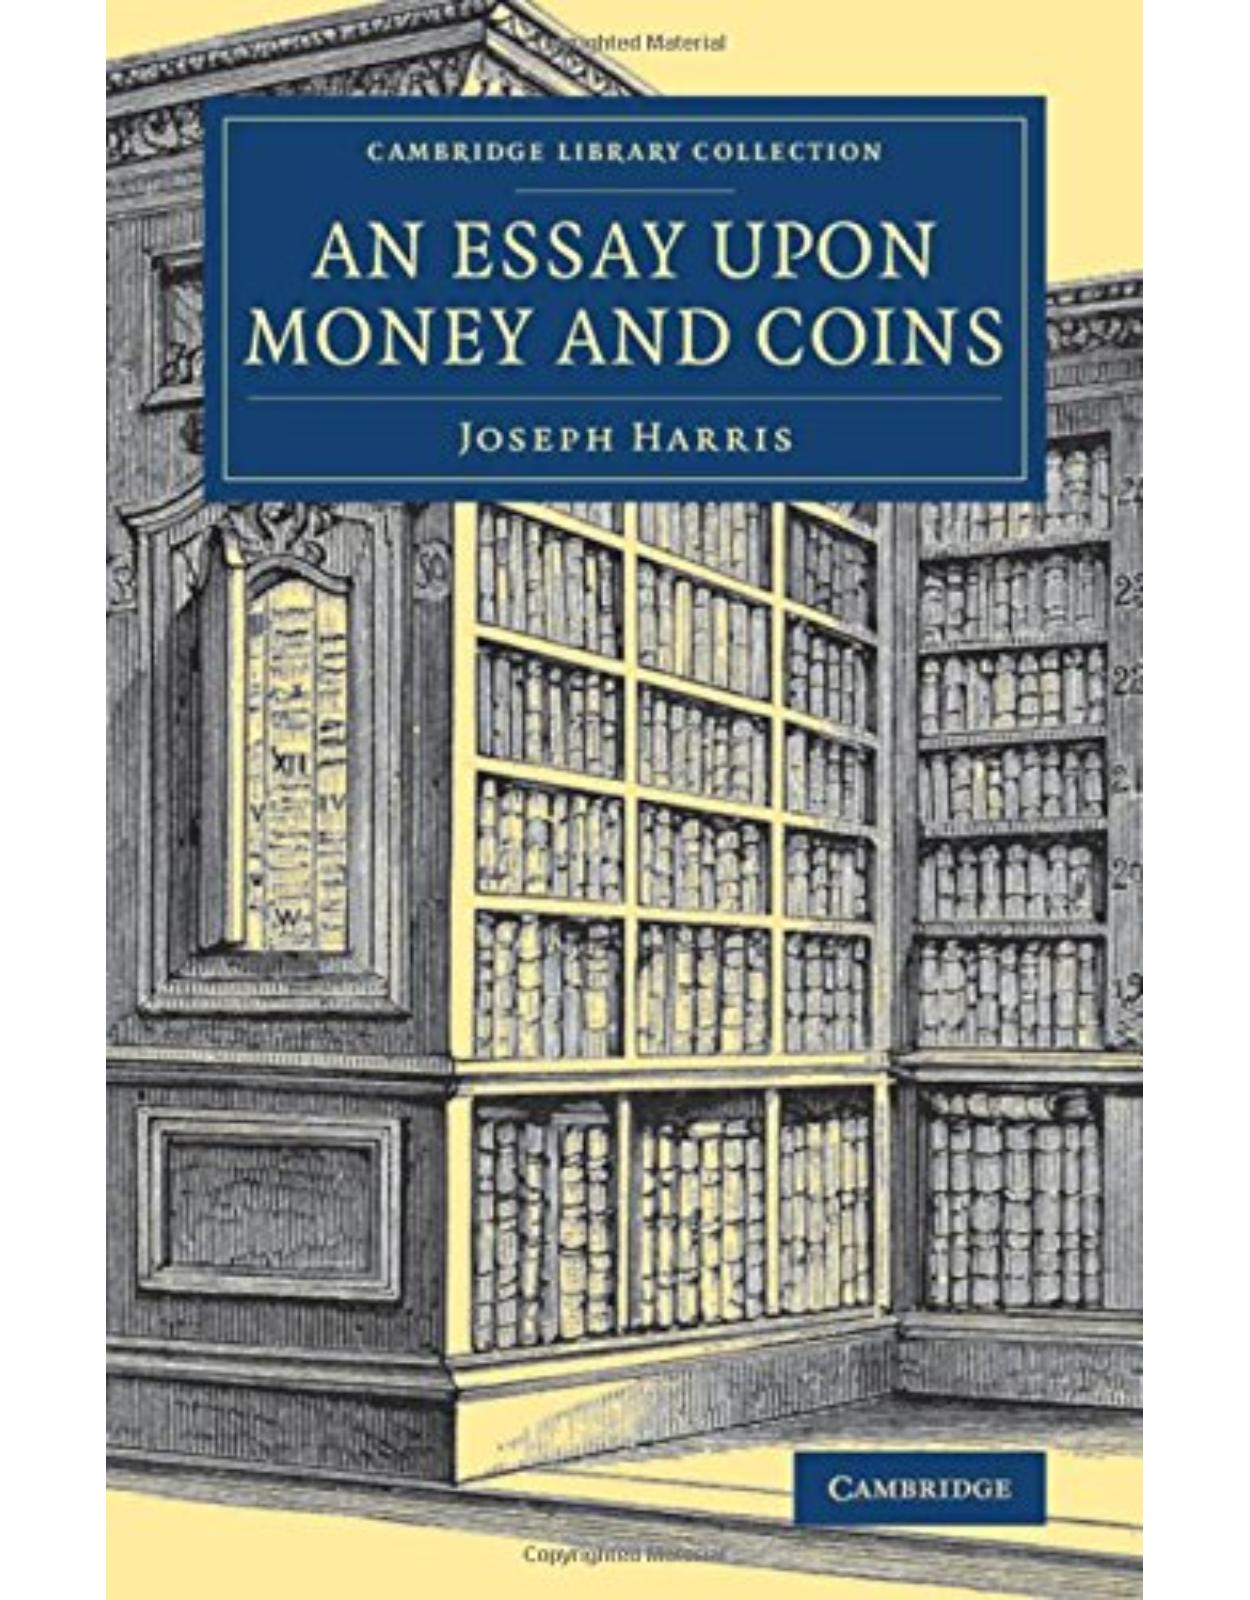 An Essay upon Money and Coins (Cambridge Library Collection - British & Irish History, 17th & 18th Centuries)